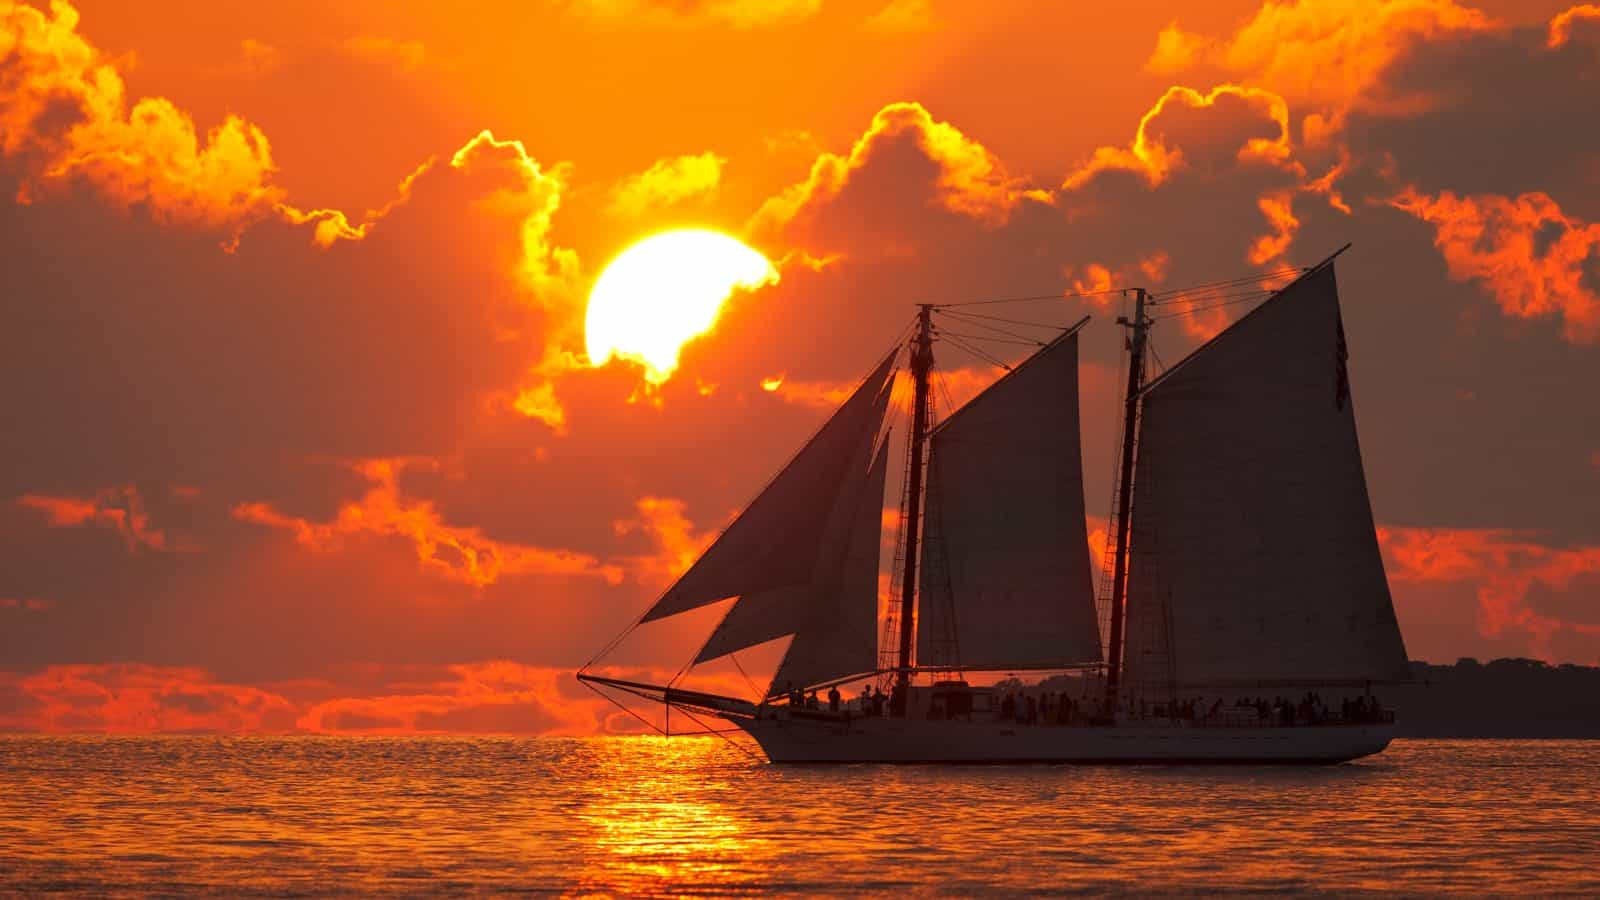 sunset boat tour is one of the best in key west